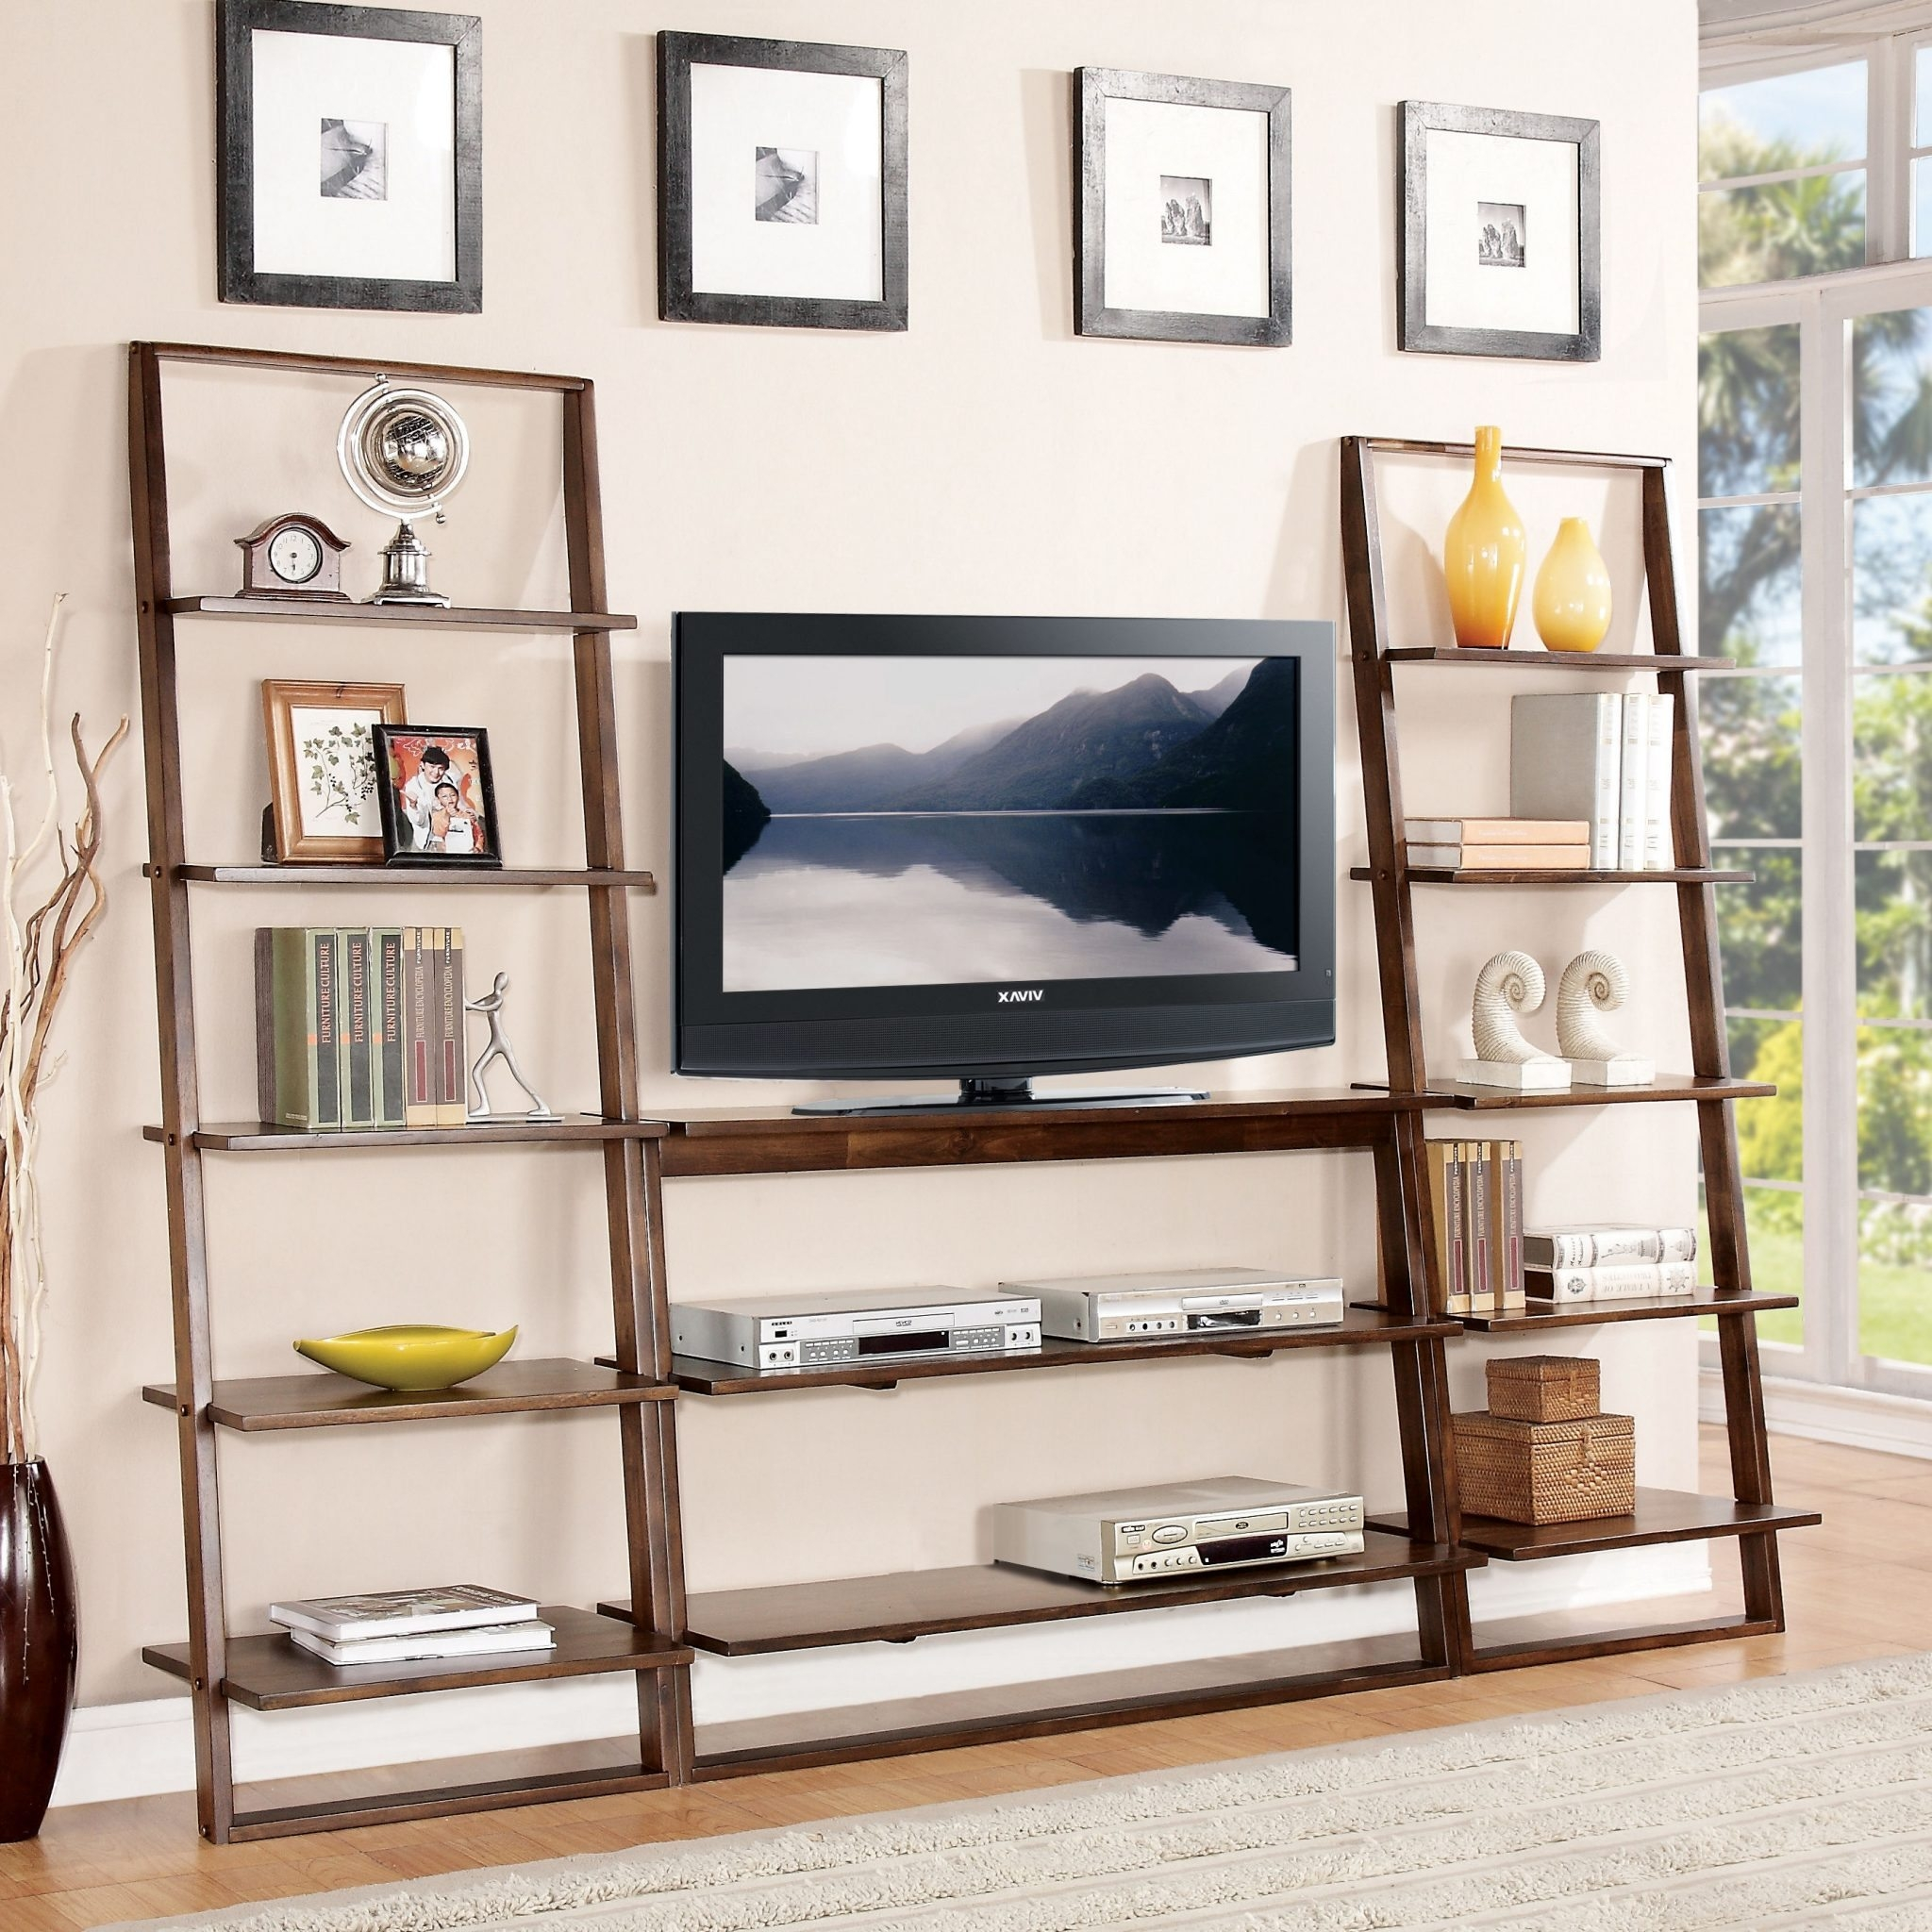 Tv Stands Inspire Black And White Tv Stand Bookshelf Design Ideas With Regard To Tv Unit With Bookcase (View 10 of 15)